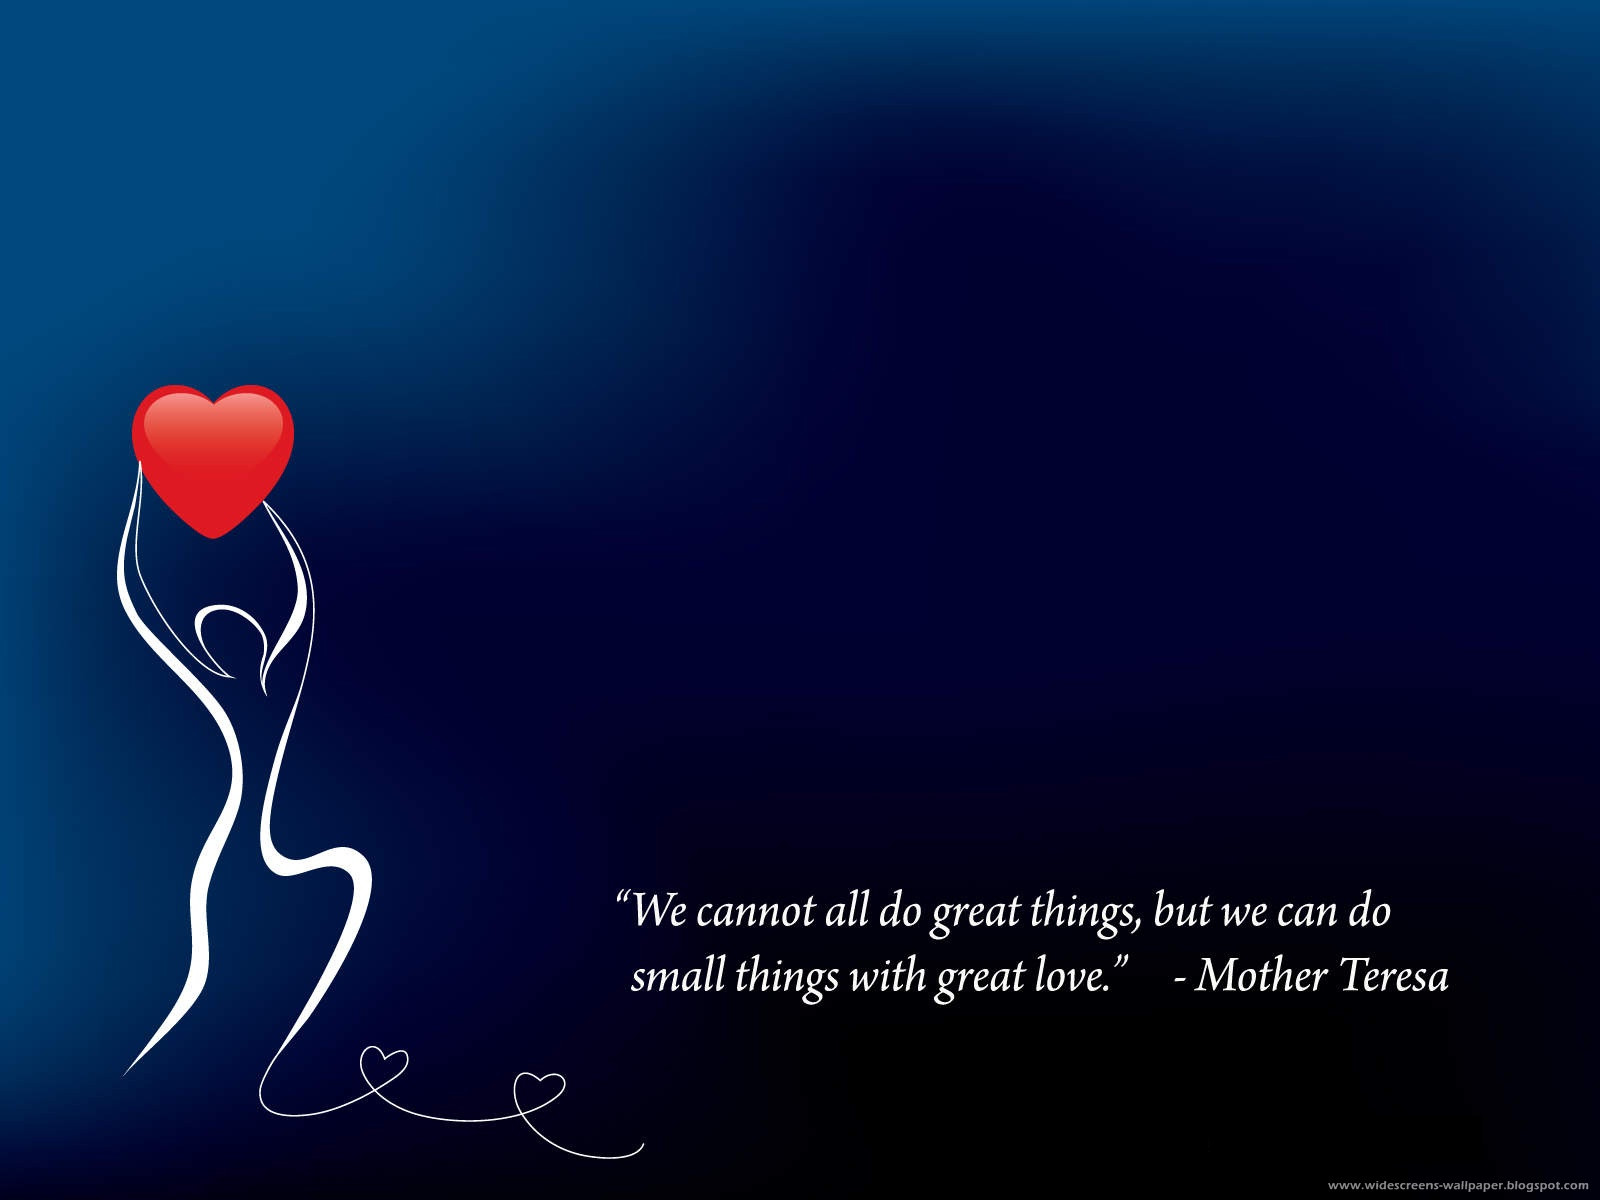 Famous Romantic Quotes  Wallpaper Collection For Your puter and Mobile Phones